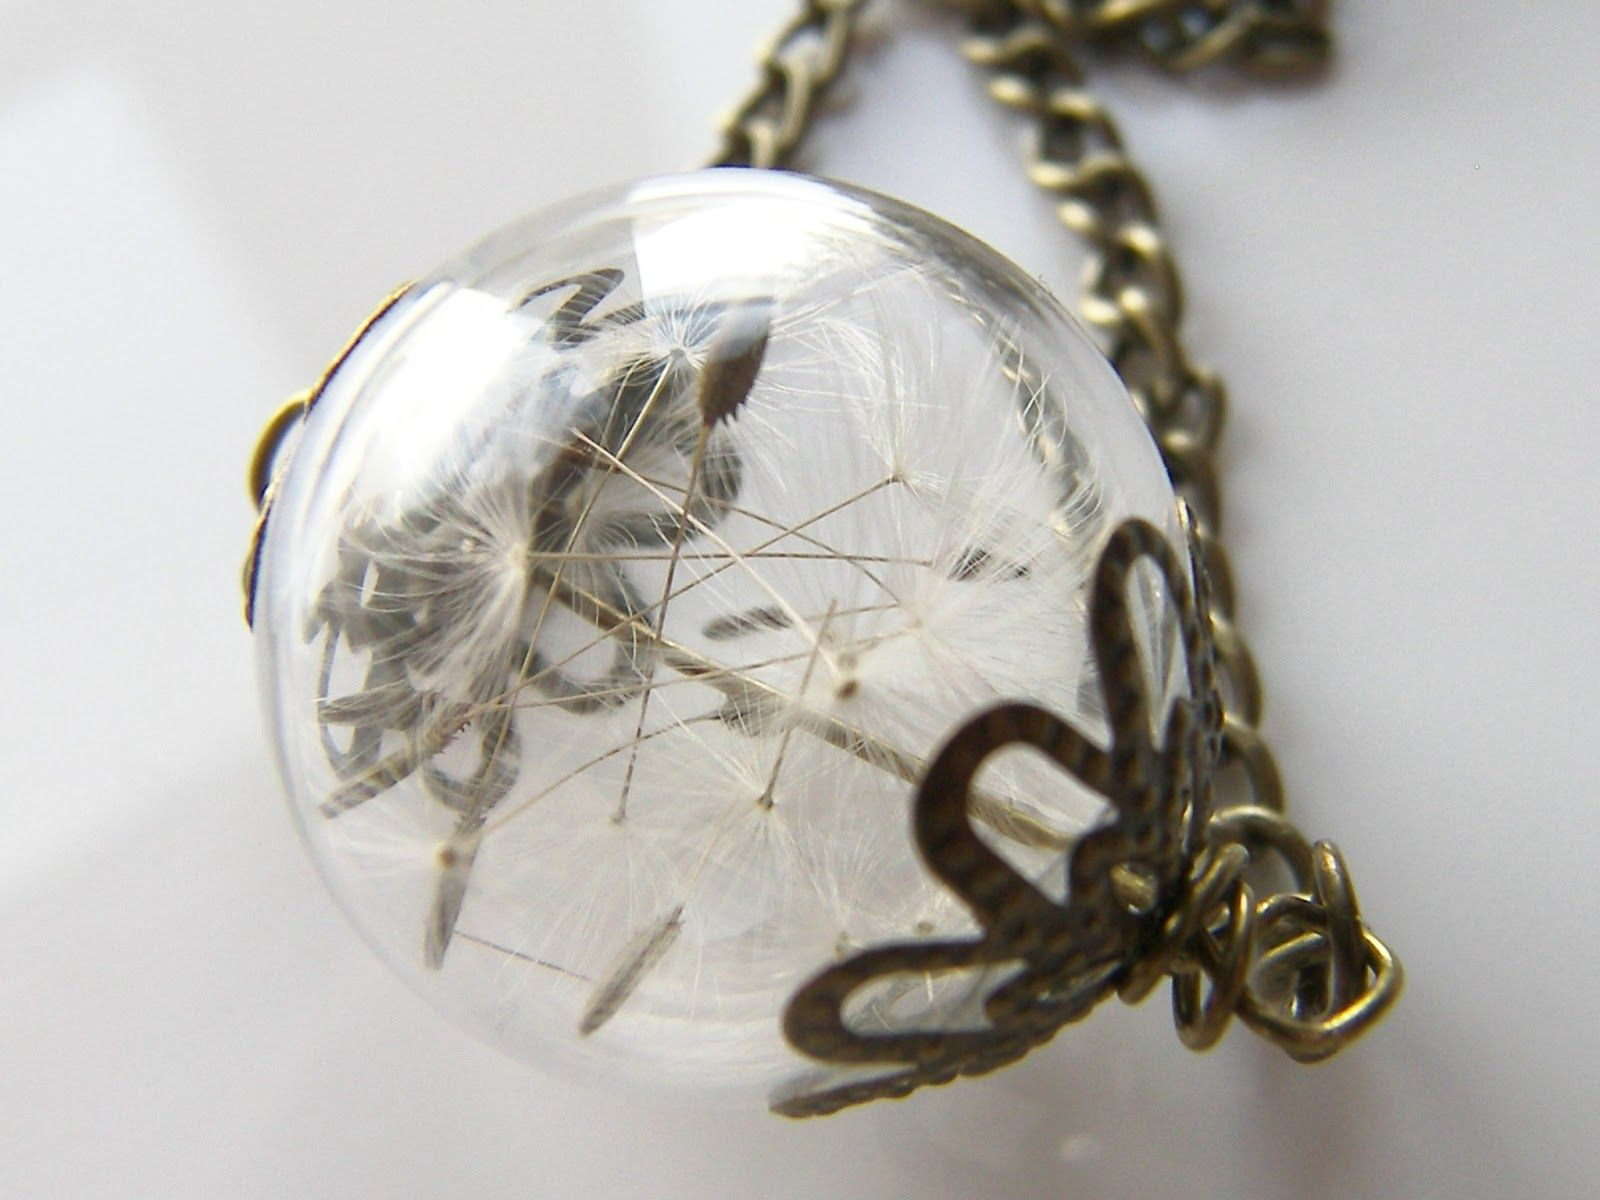 Woodland jewellery at Wishes on the Wind!